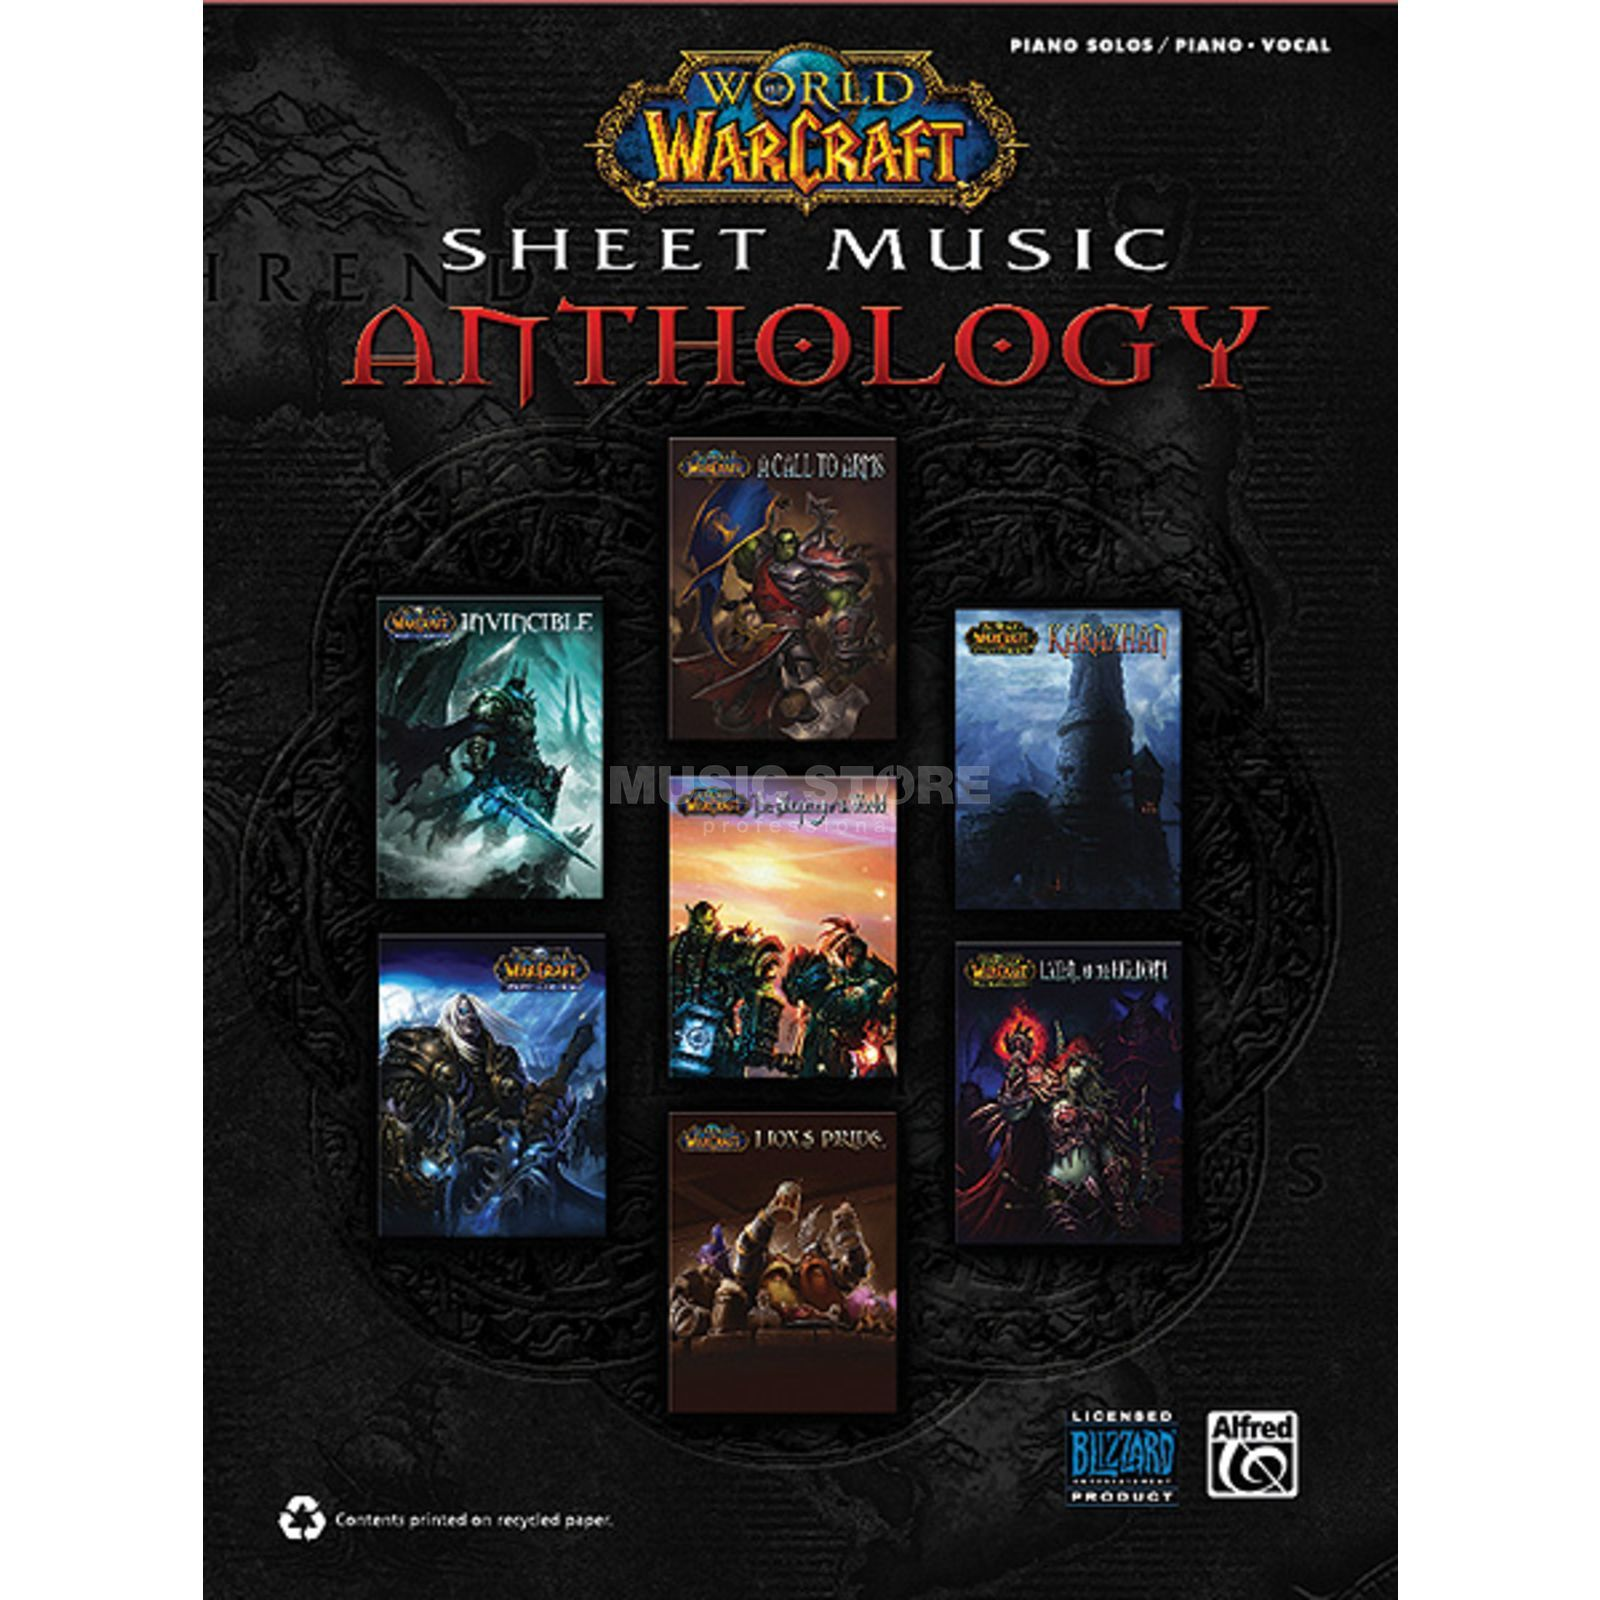 Alfred Music World of Warcraft Sheet Music Anthology Produktbild